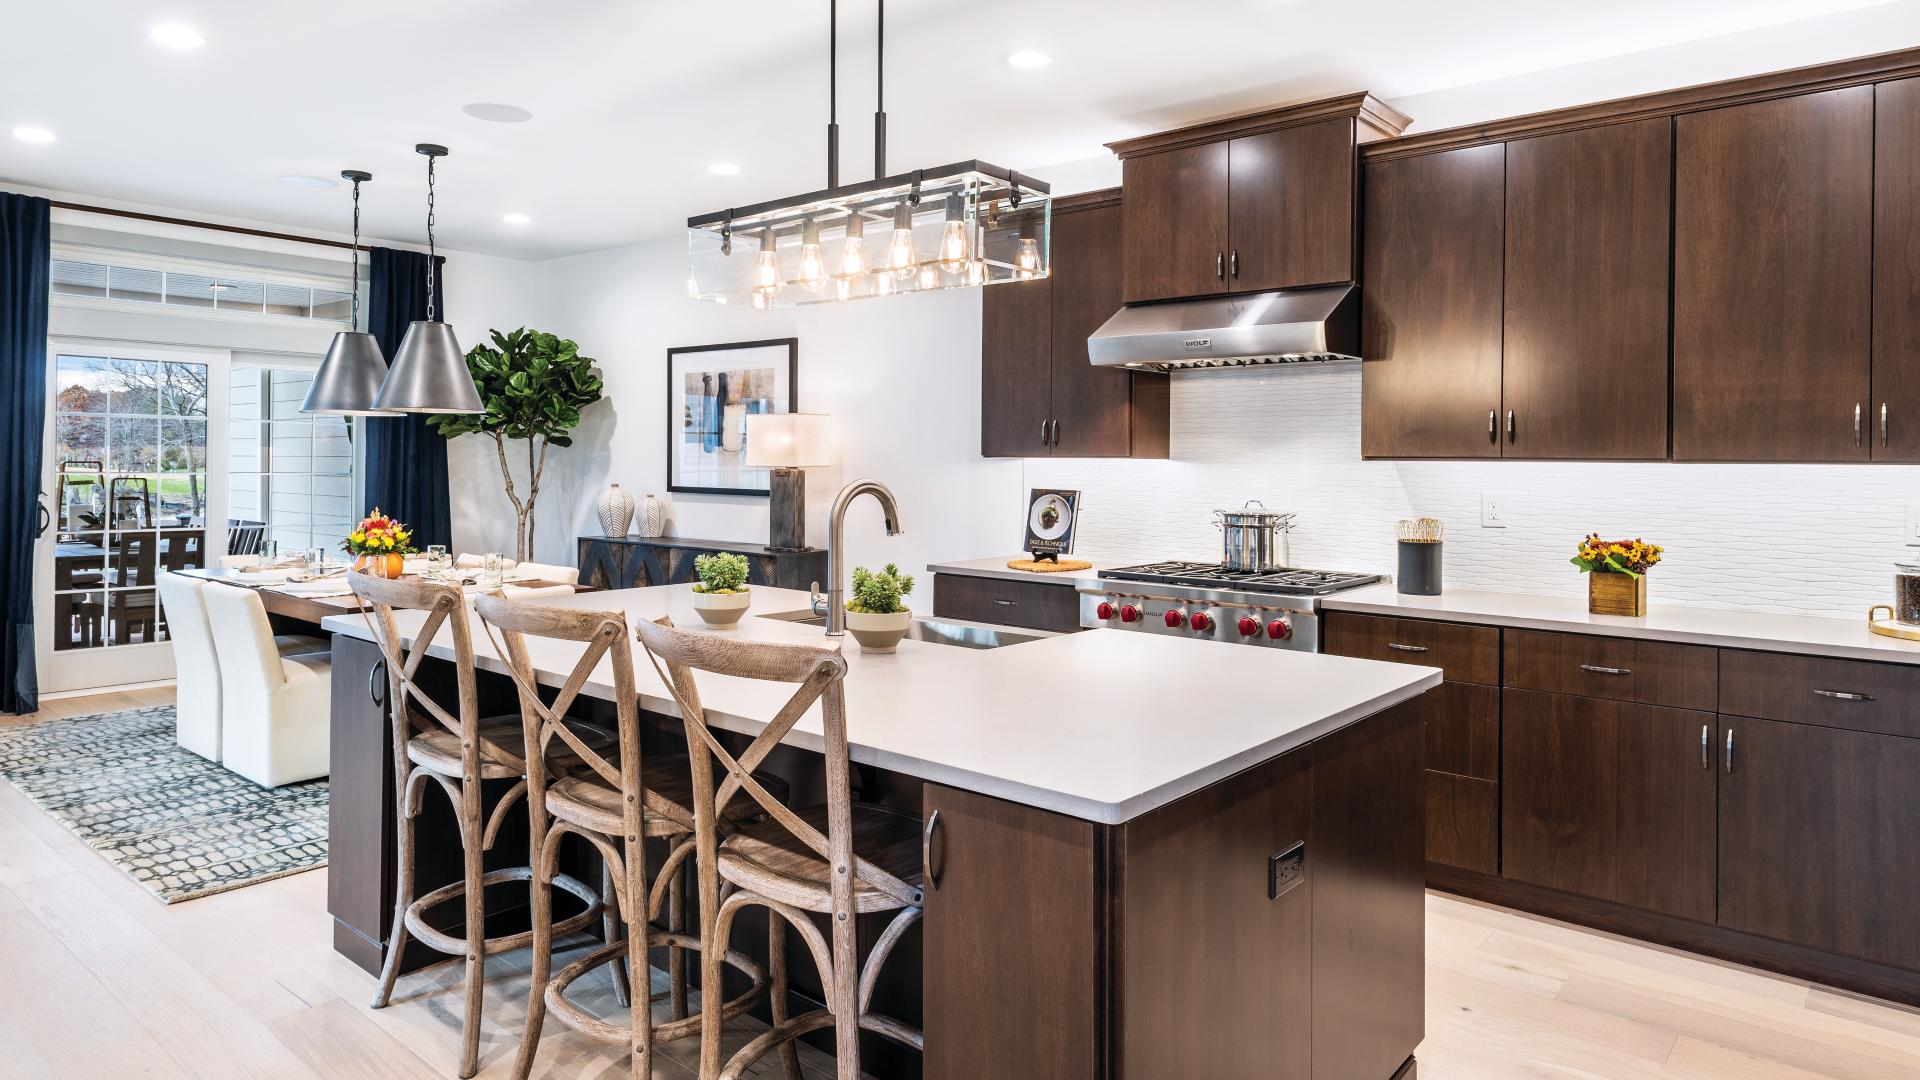 Photos are images only and should not be relied upon to confirm applicable features - Gourmet kitchen with extra counter space for entertaining